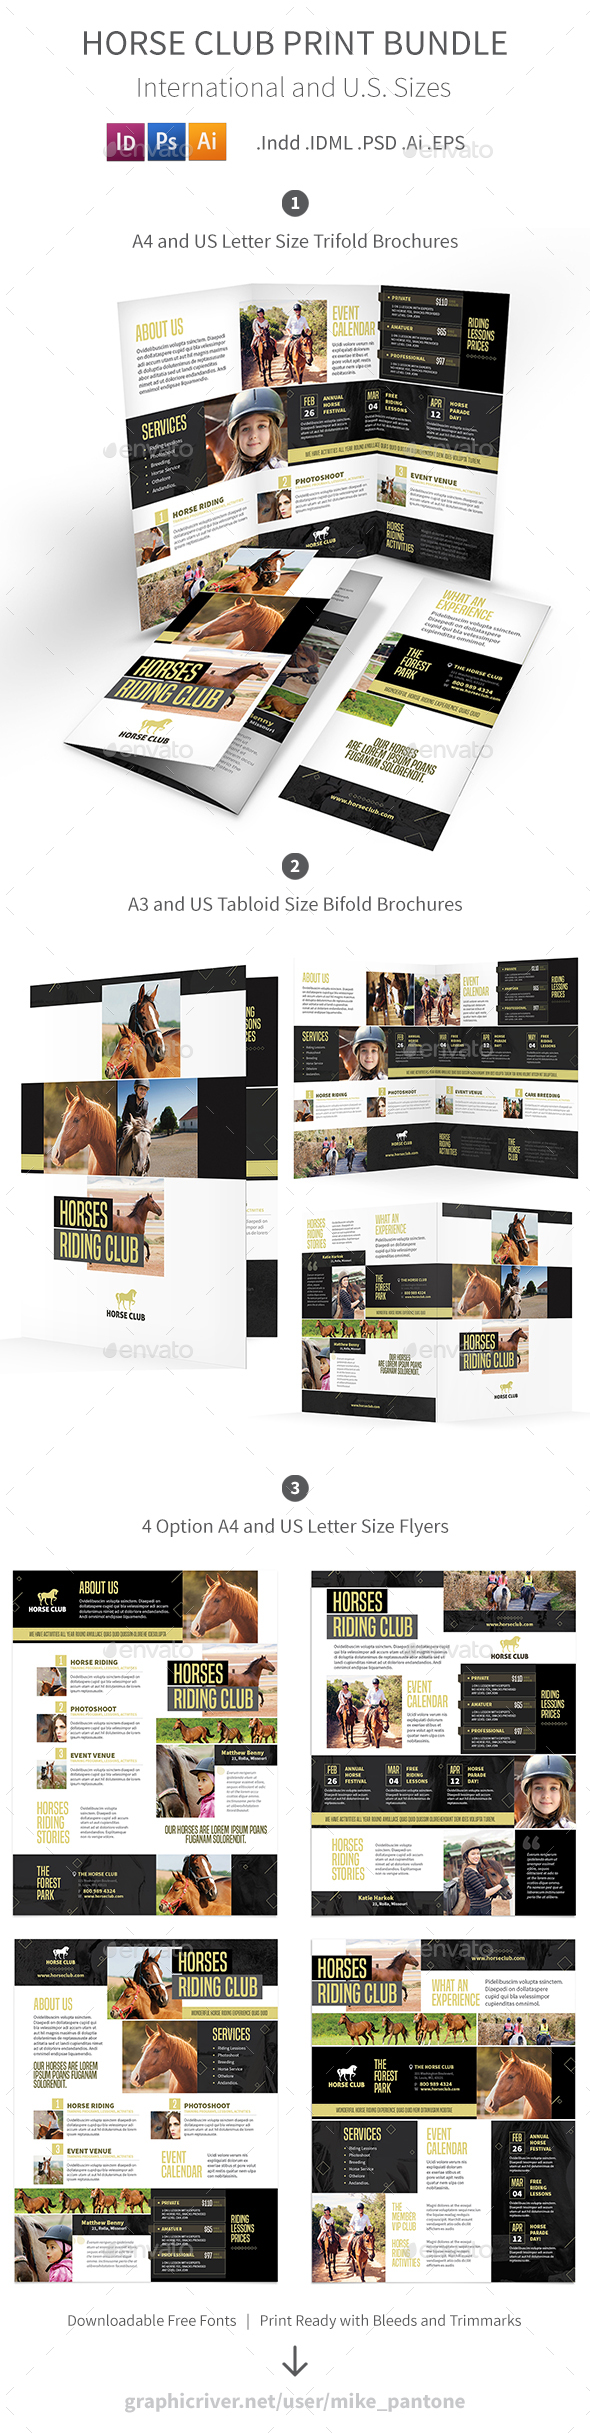 Horse Club Print Bundle - Informational Brochures